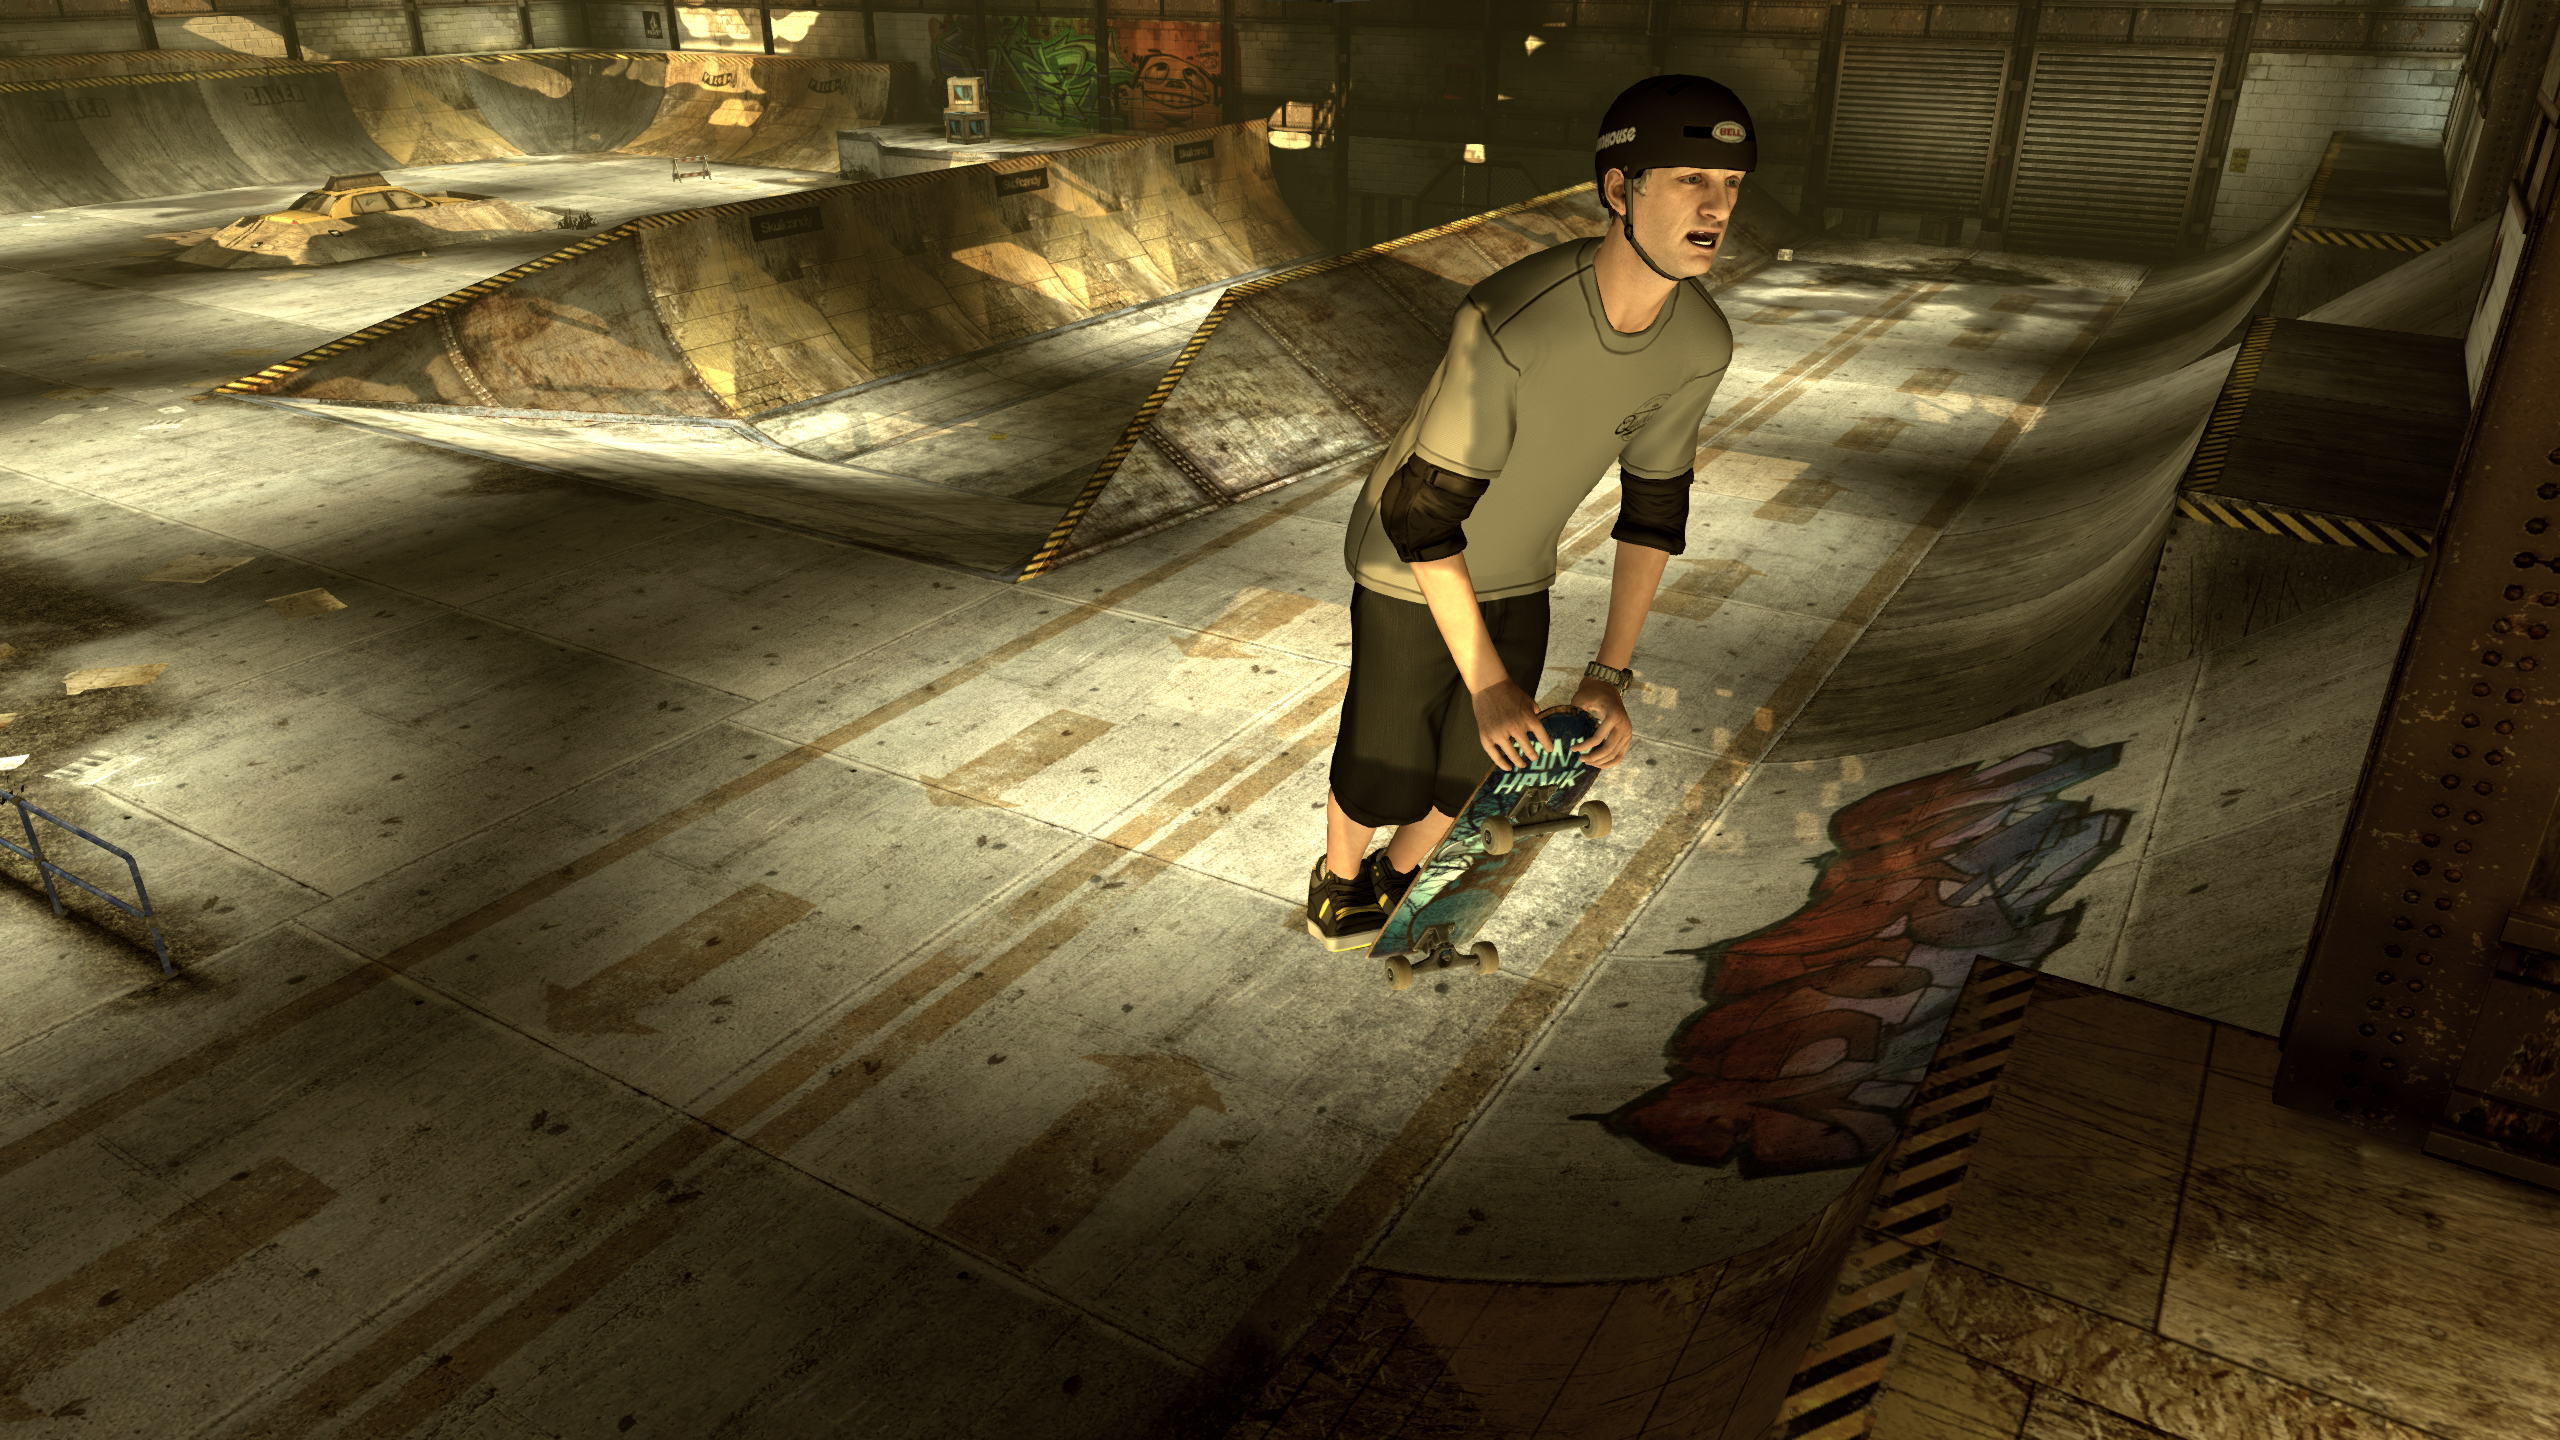 Tony hawk series video game news for Serie warehouse